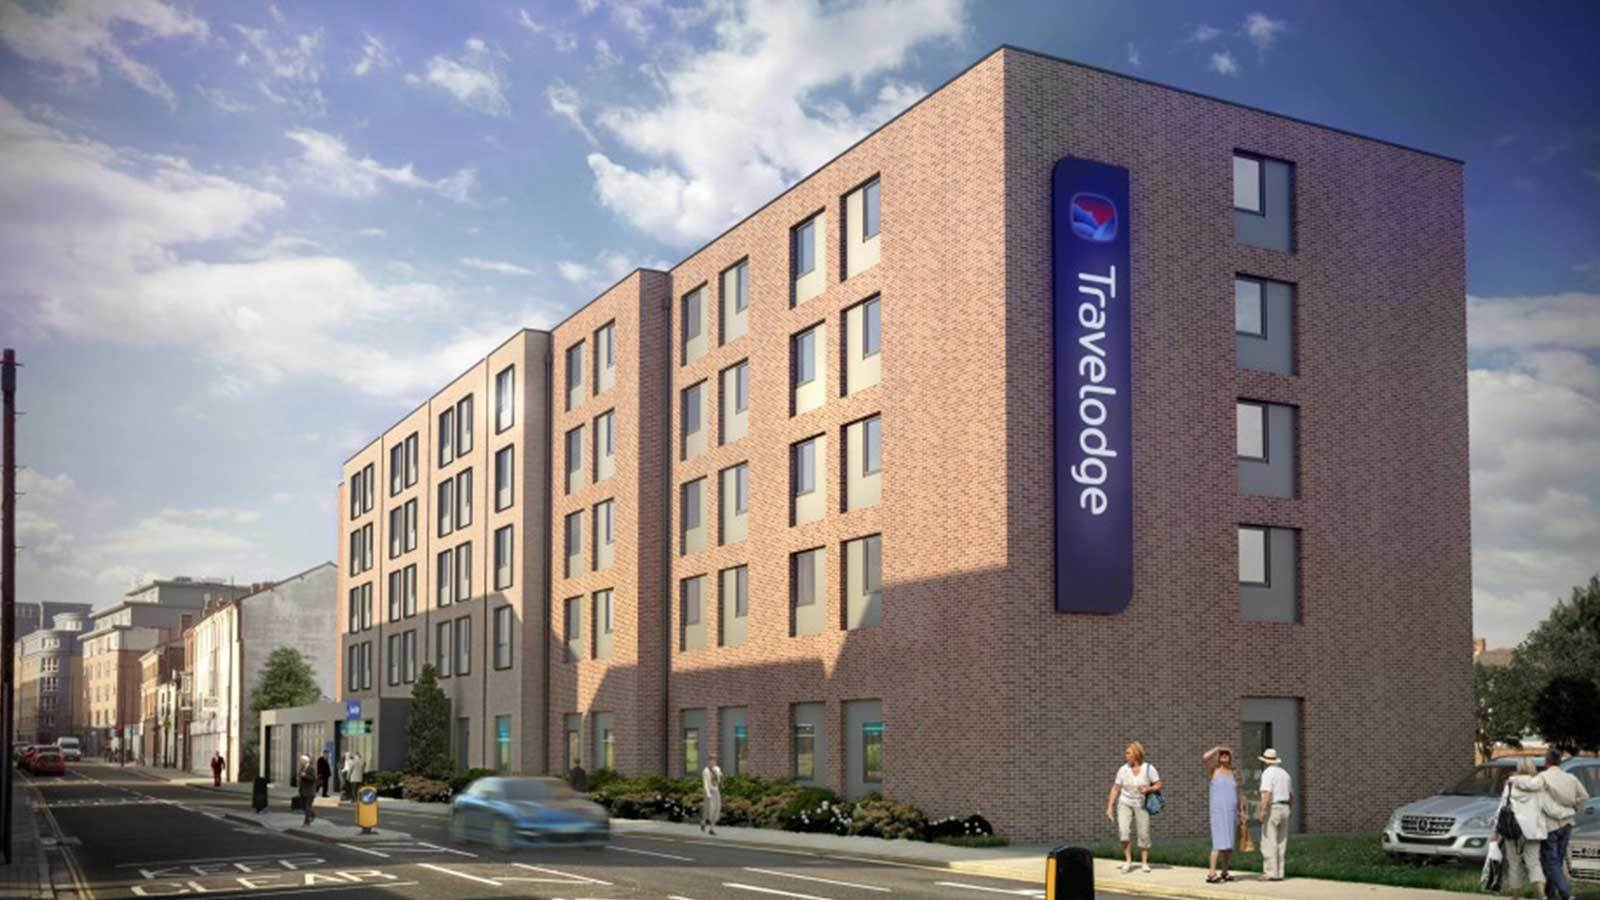 Travelodge Southampton